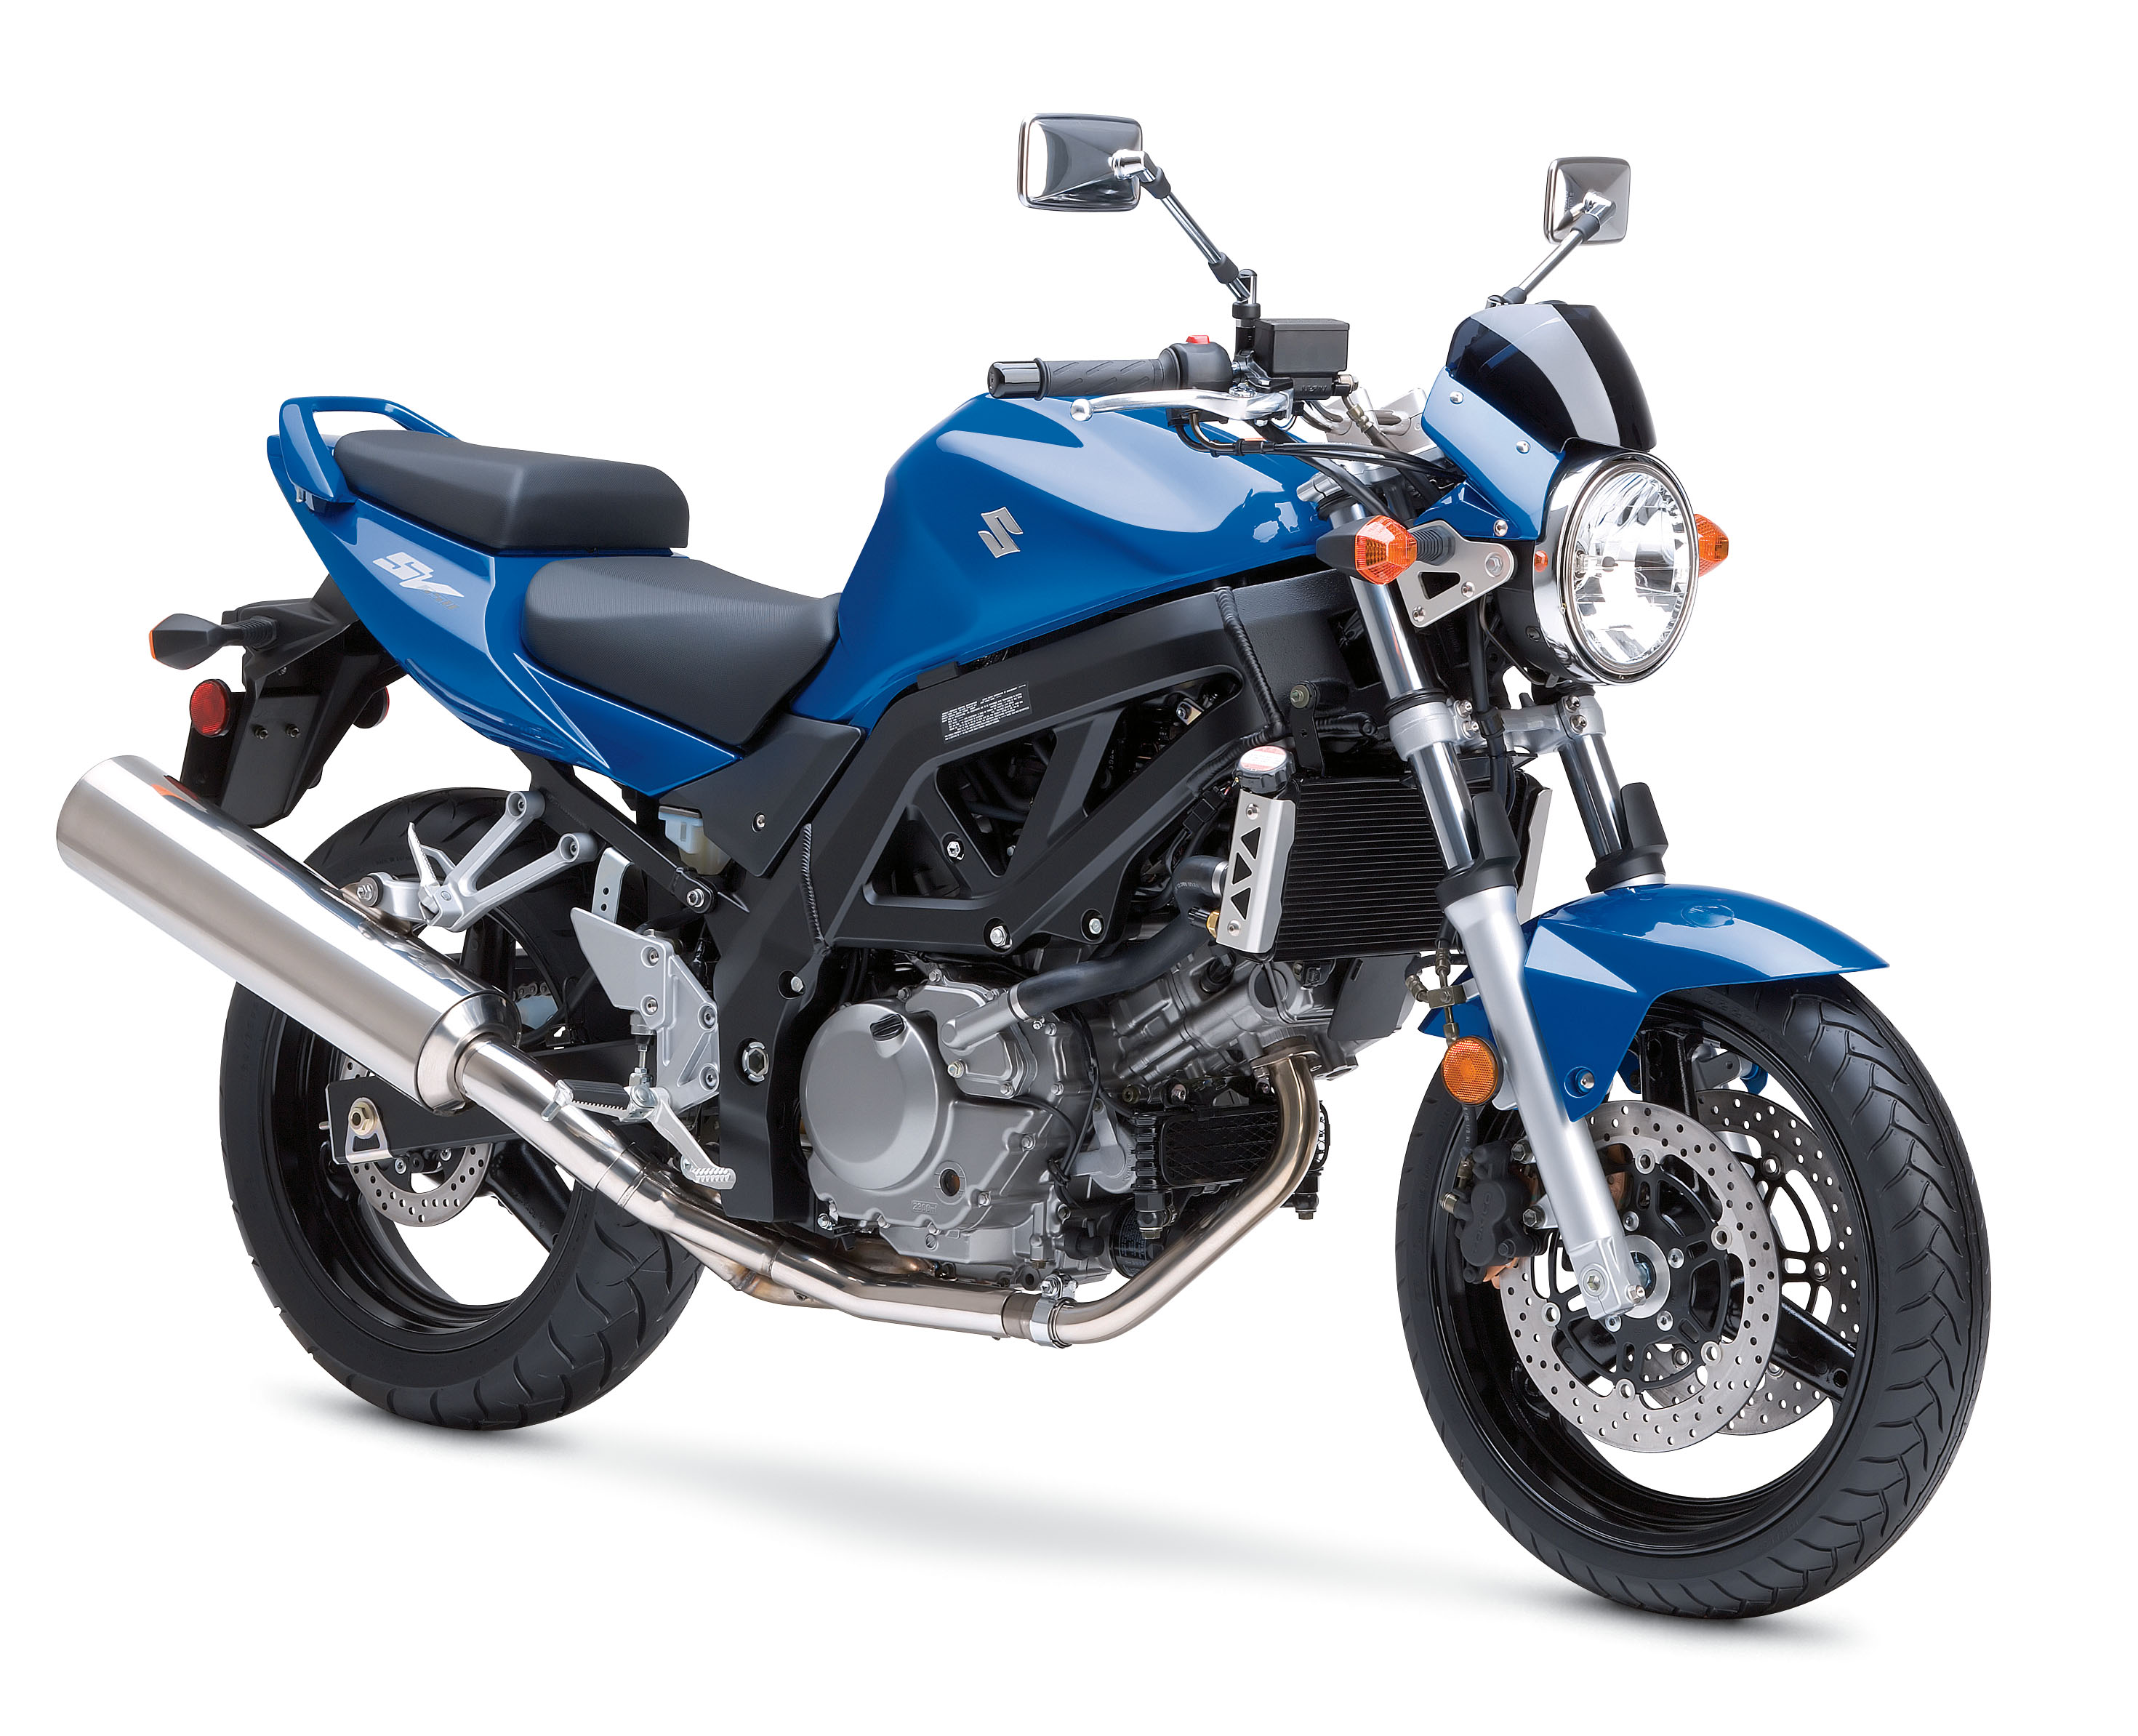 2008 Suzuki Sv650 Top Speed